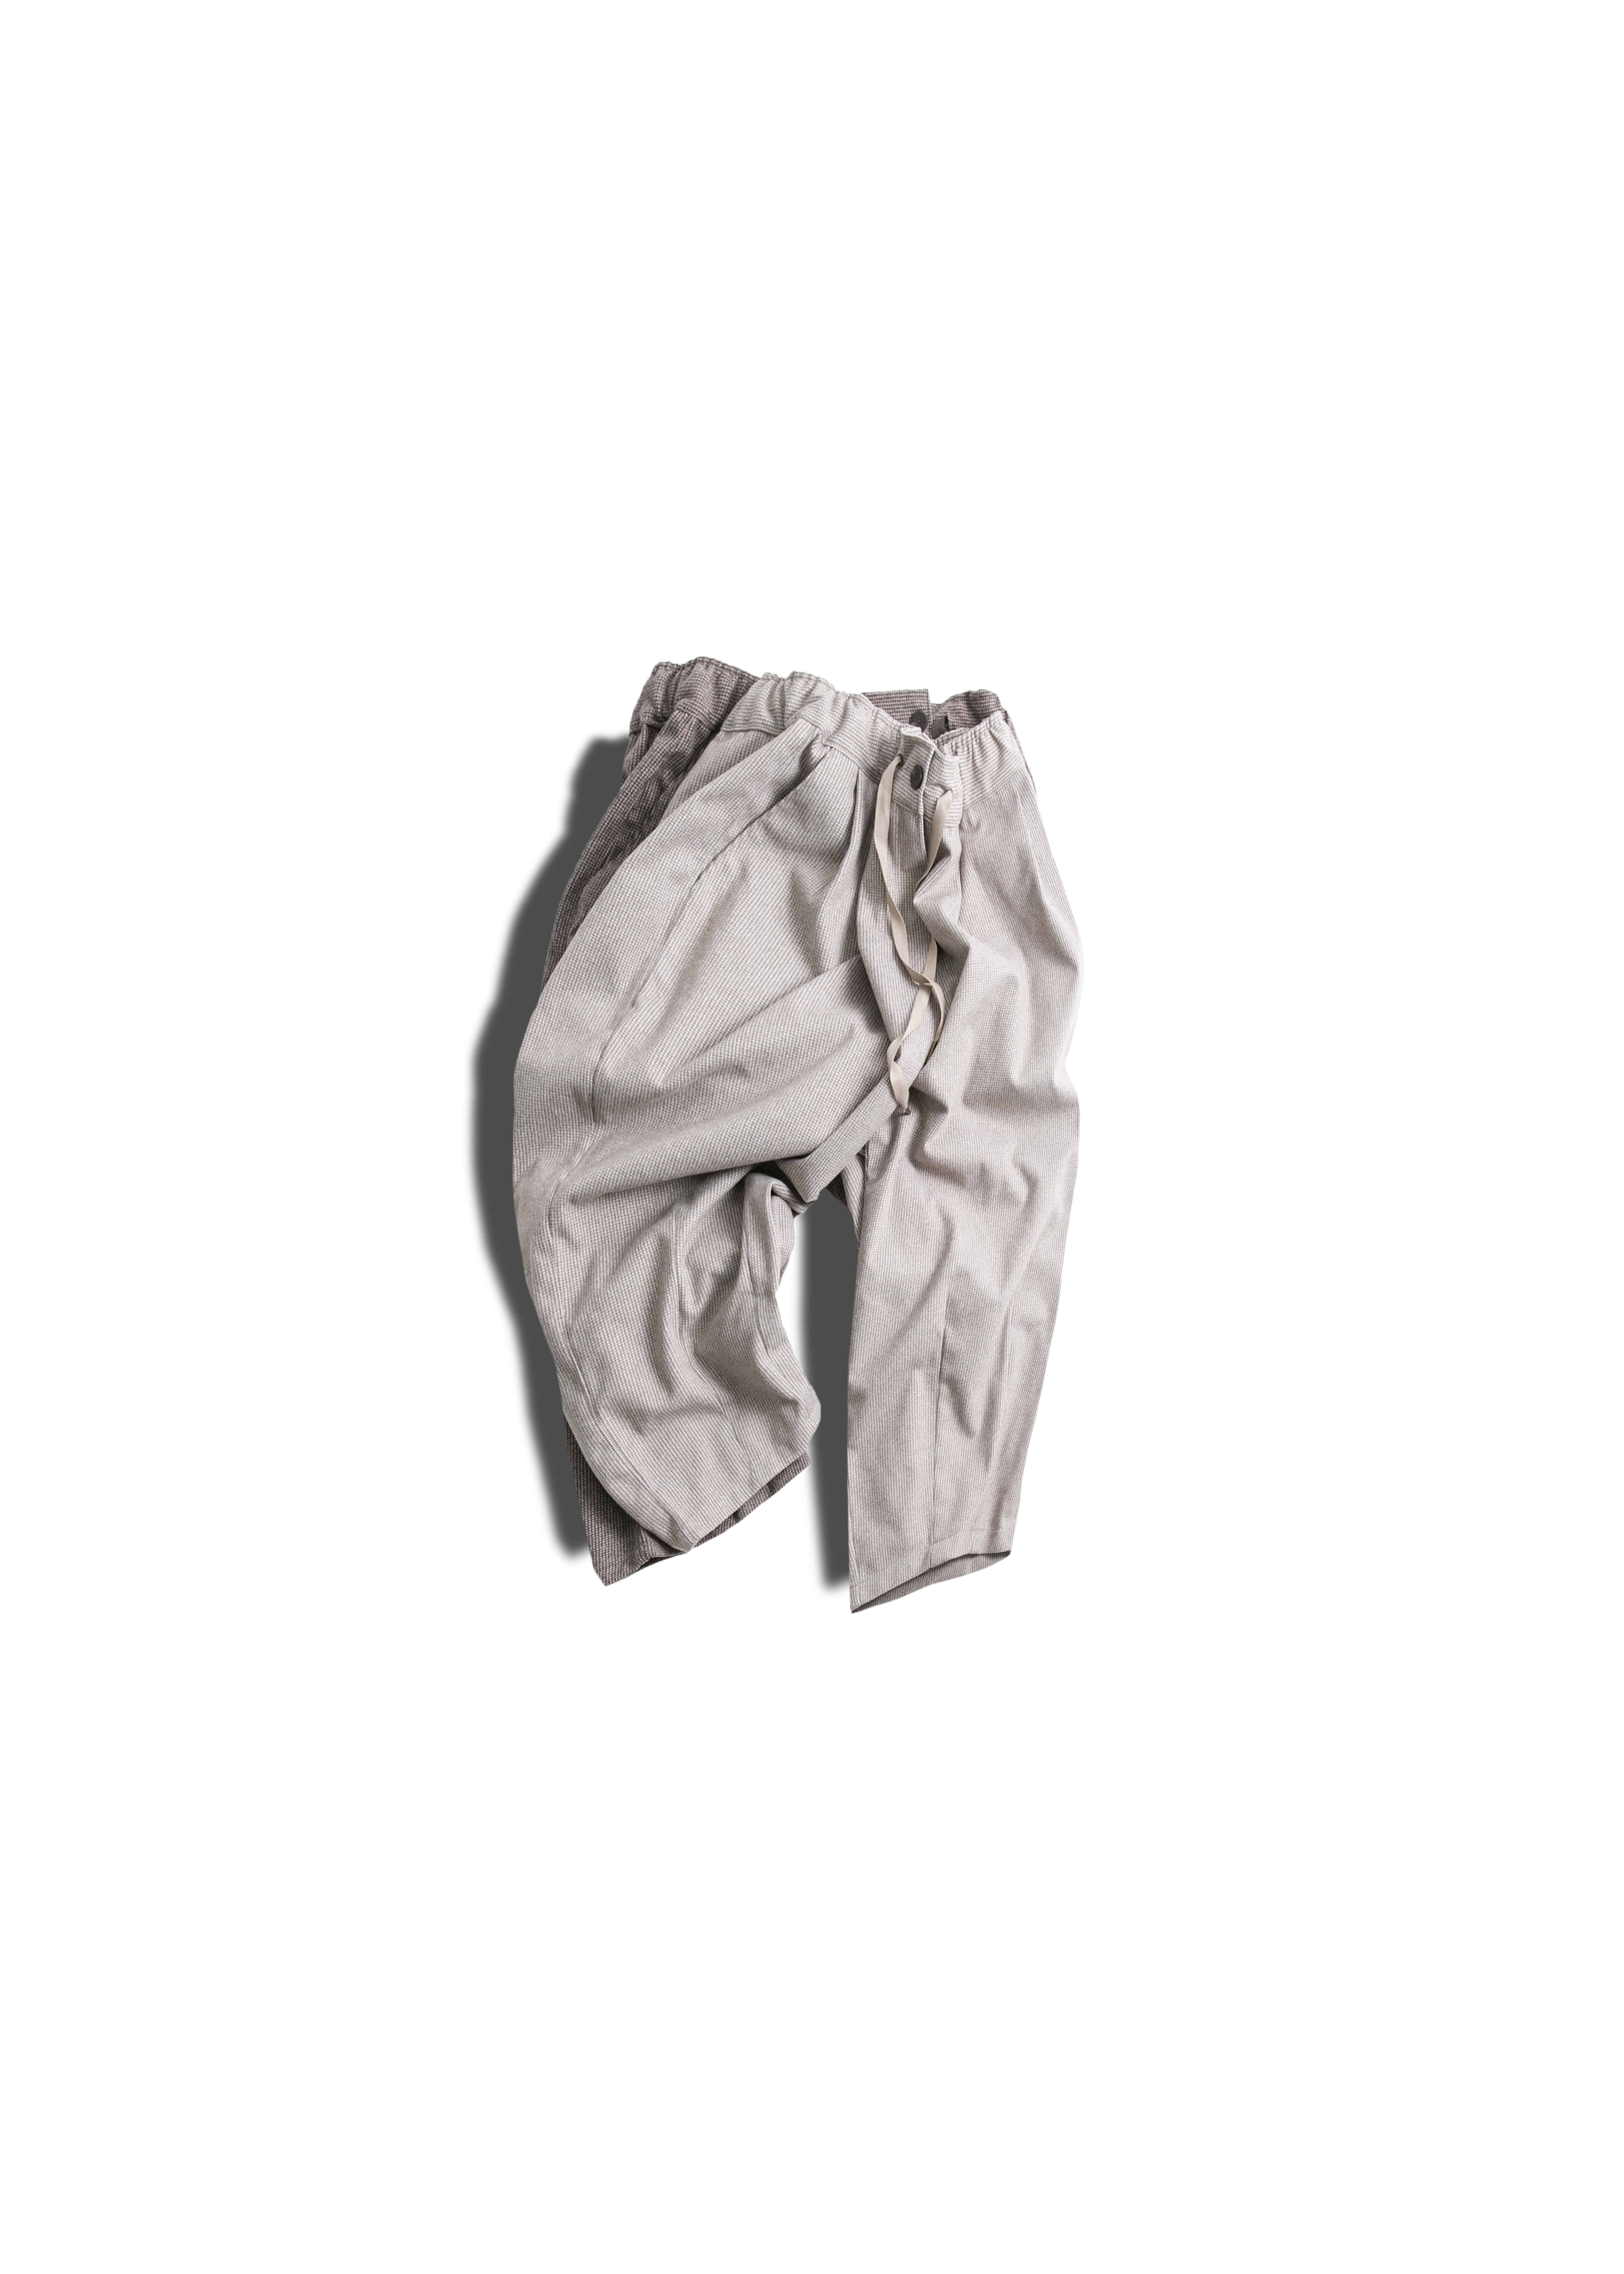 Wool Hound's Check Balloon Pants - 2color